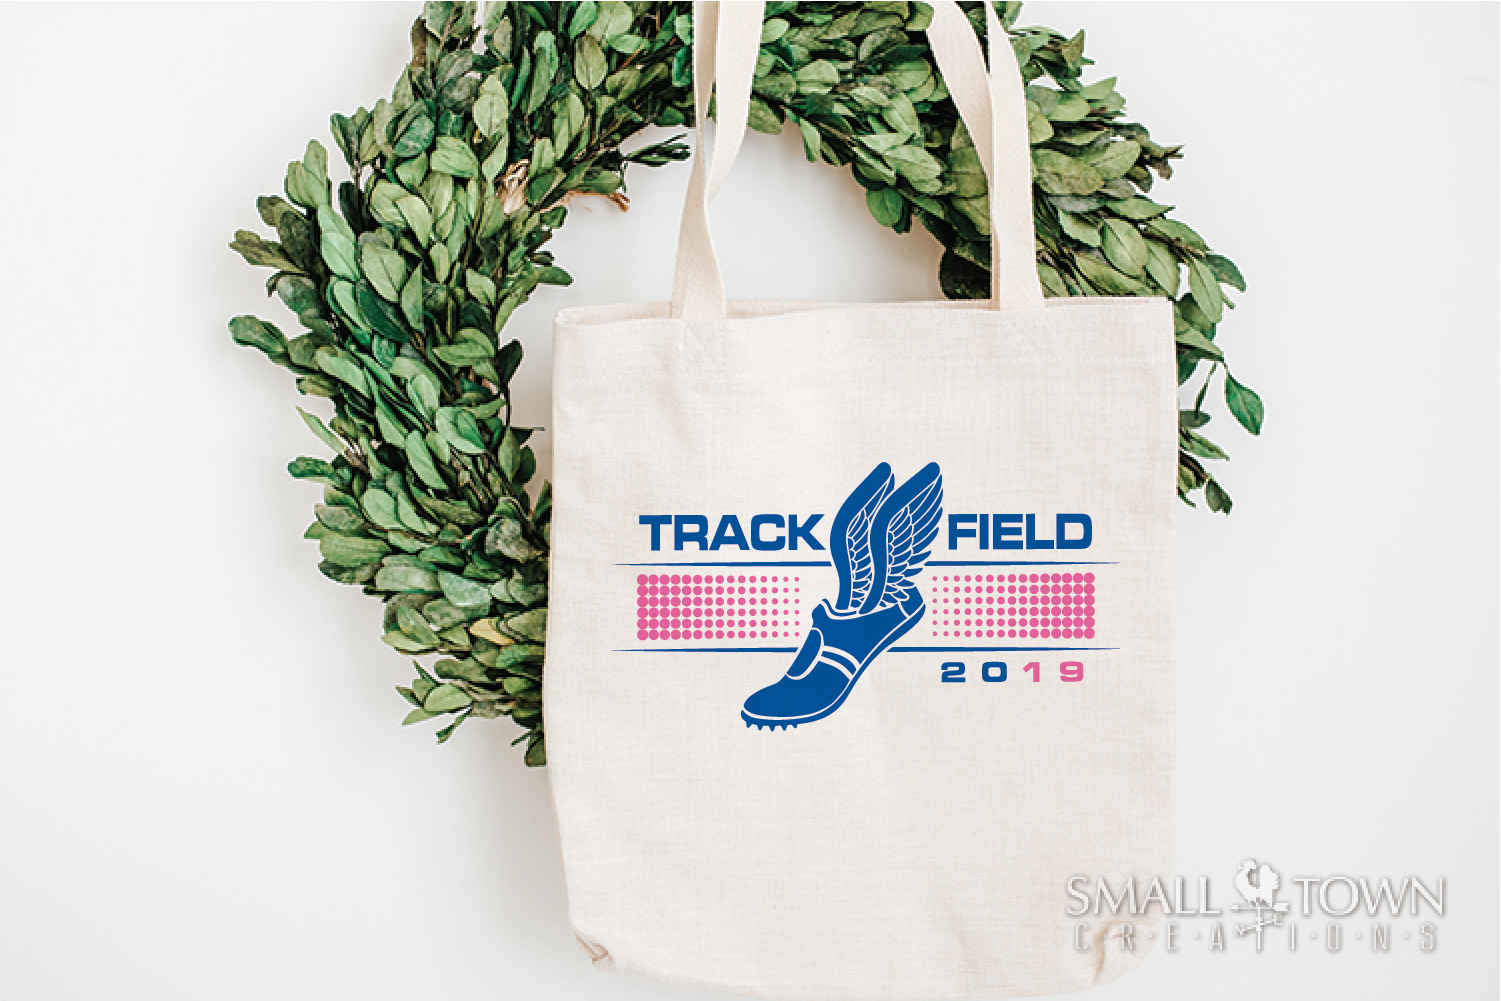 Track and Field, Team sport, Track logo, PRINT, CUT, DESIGN example image 4